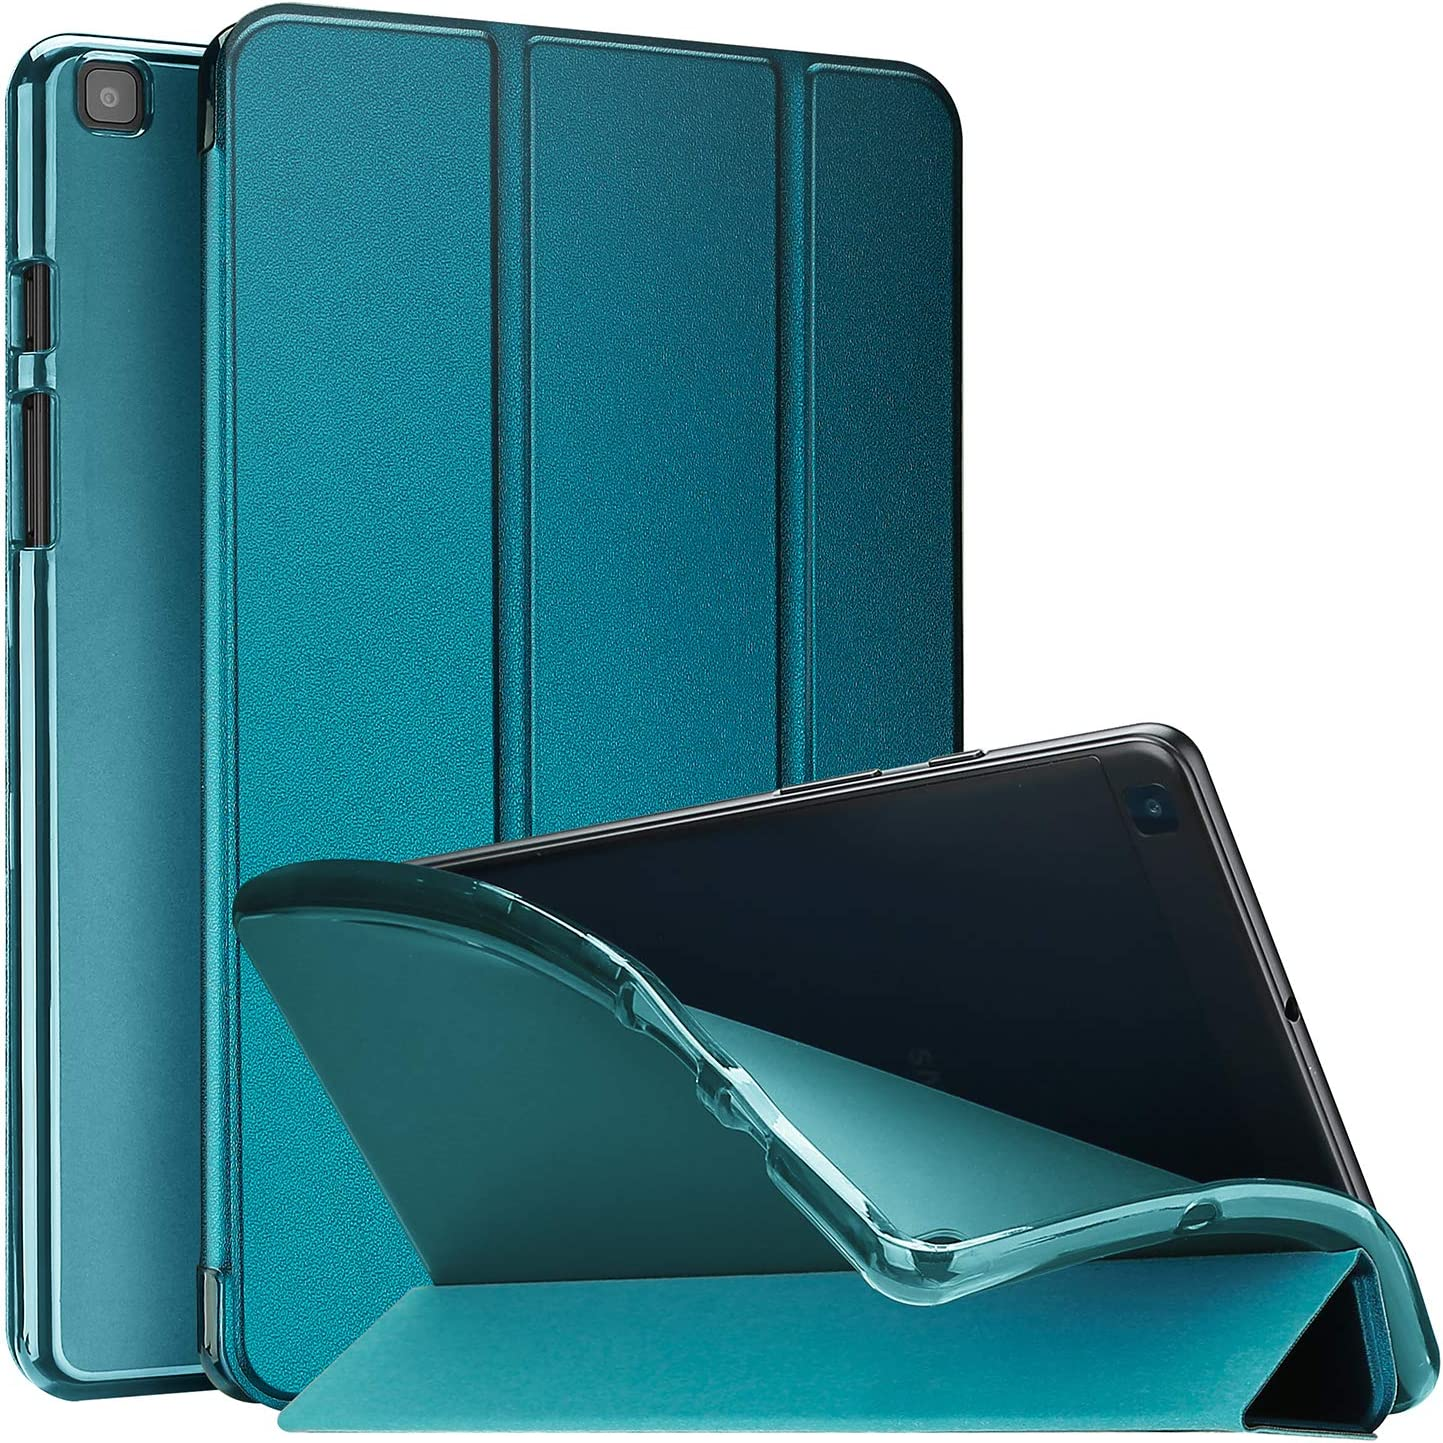 ProCase Galaxy Tab A 8.0 2019 Case T290 T295, Soft Slim Trifold Stand Folio Case with Flexible TPU Translucent Frosted Back Cover for 8.0 Inch Galaxy Tab A 2019 SM-T290 SM-T295 -Teal